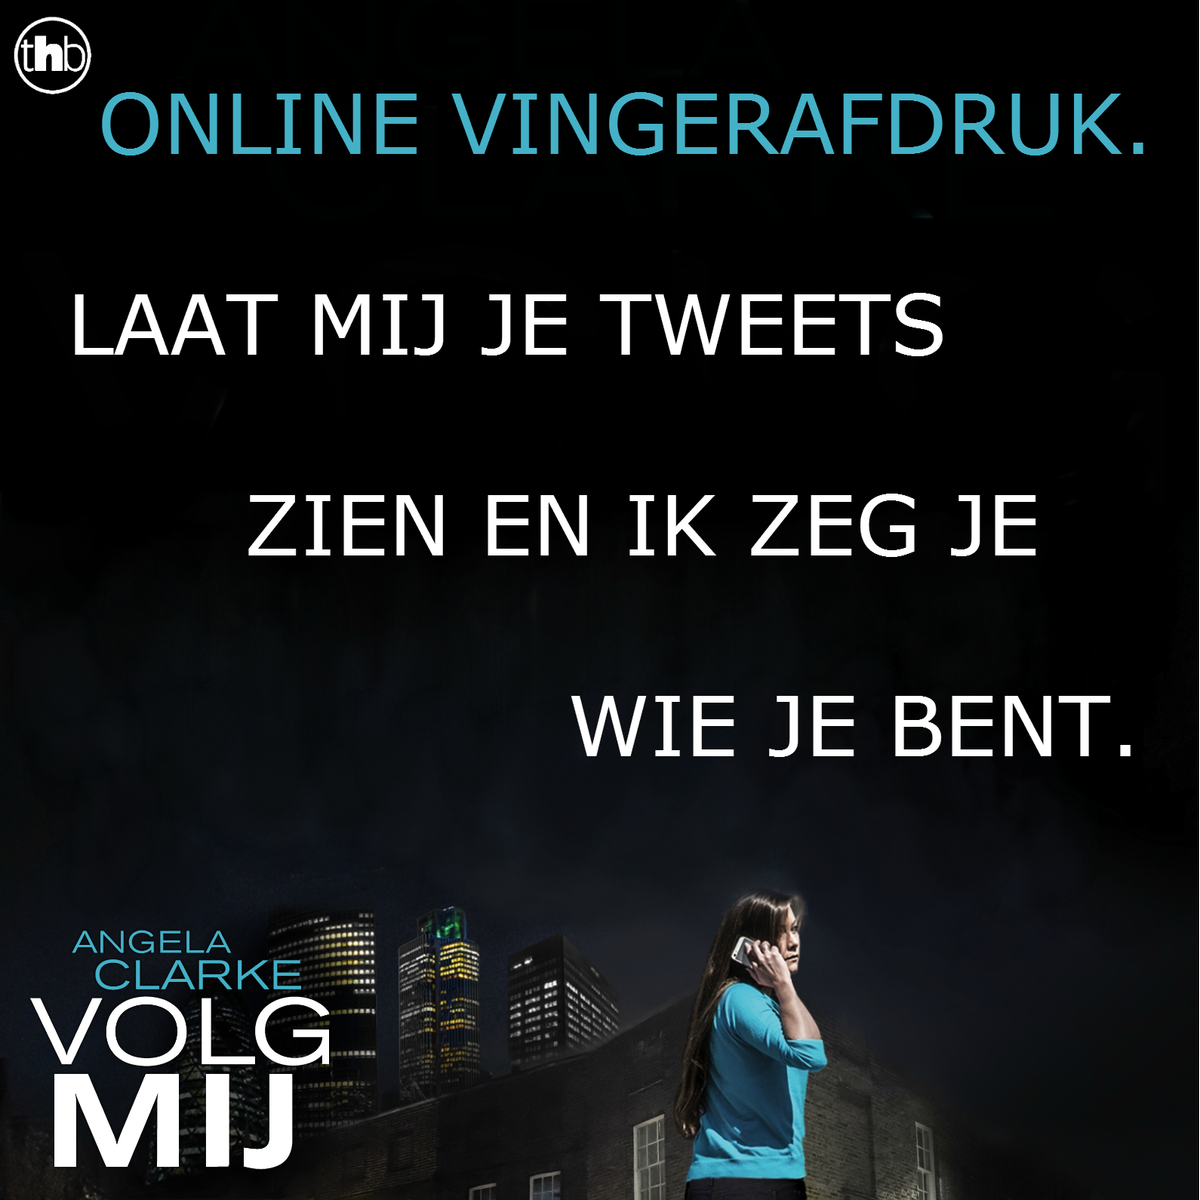 Hoofdstuk 20: #FOMO - Fear Of Missing Out. #volgmij @TheAngelaClarke<br>http://pic.twitter.com/x5S0709sqs